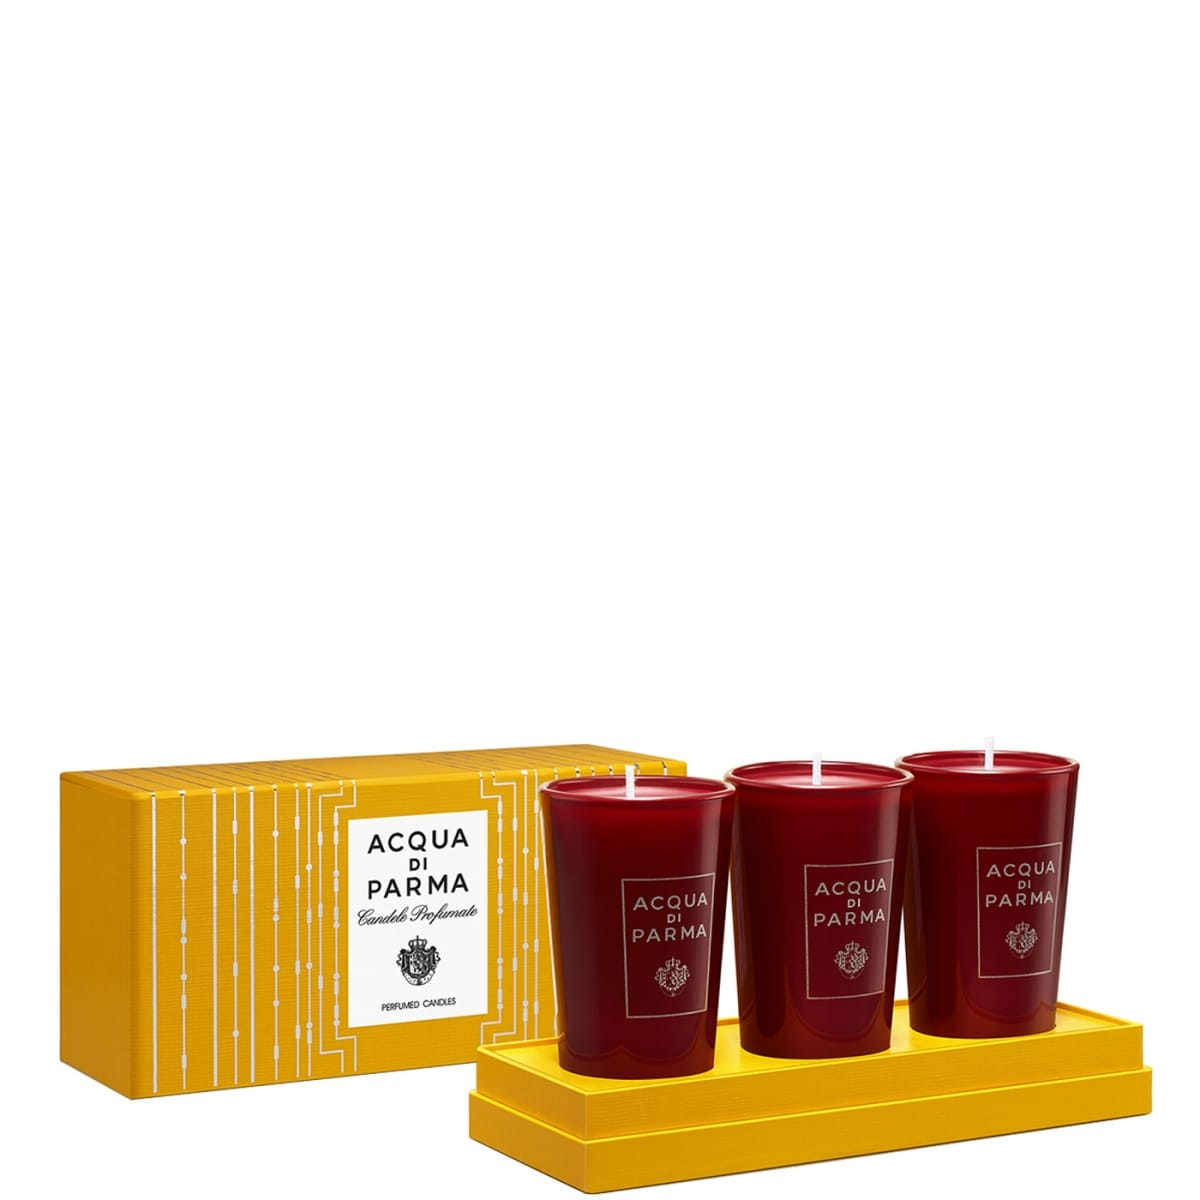 bougies parfum es coffret parfum maison acqua di parma incenza. Black Bedroom Furniture Sets. Home Design Ideas